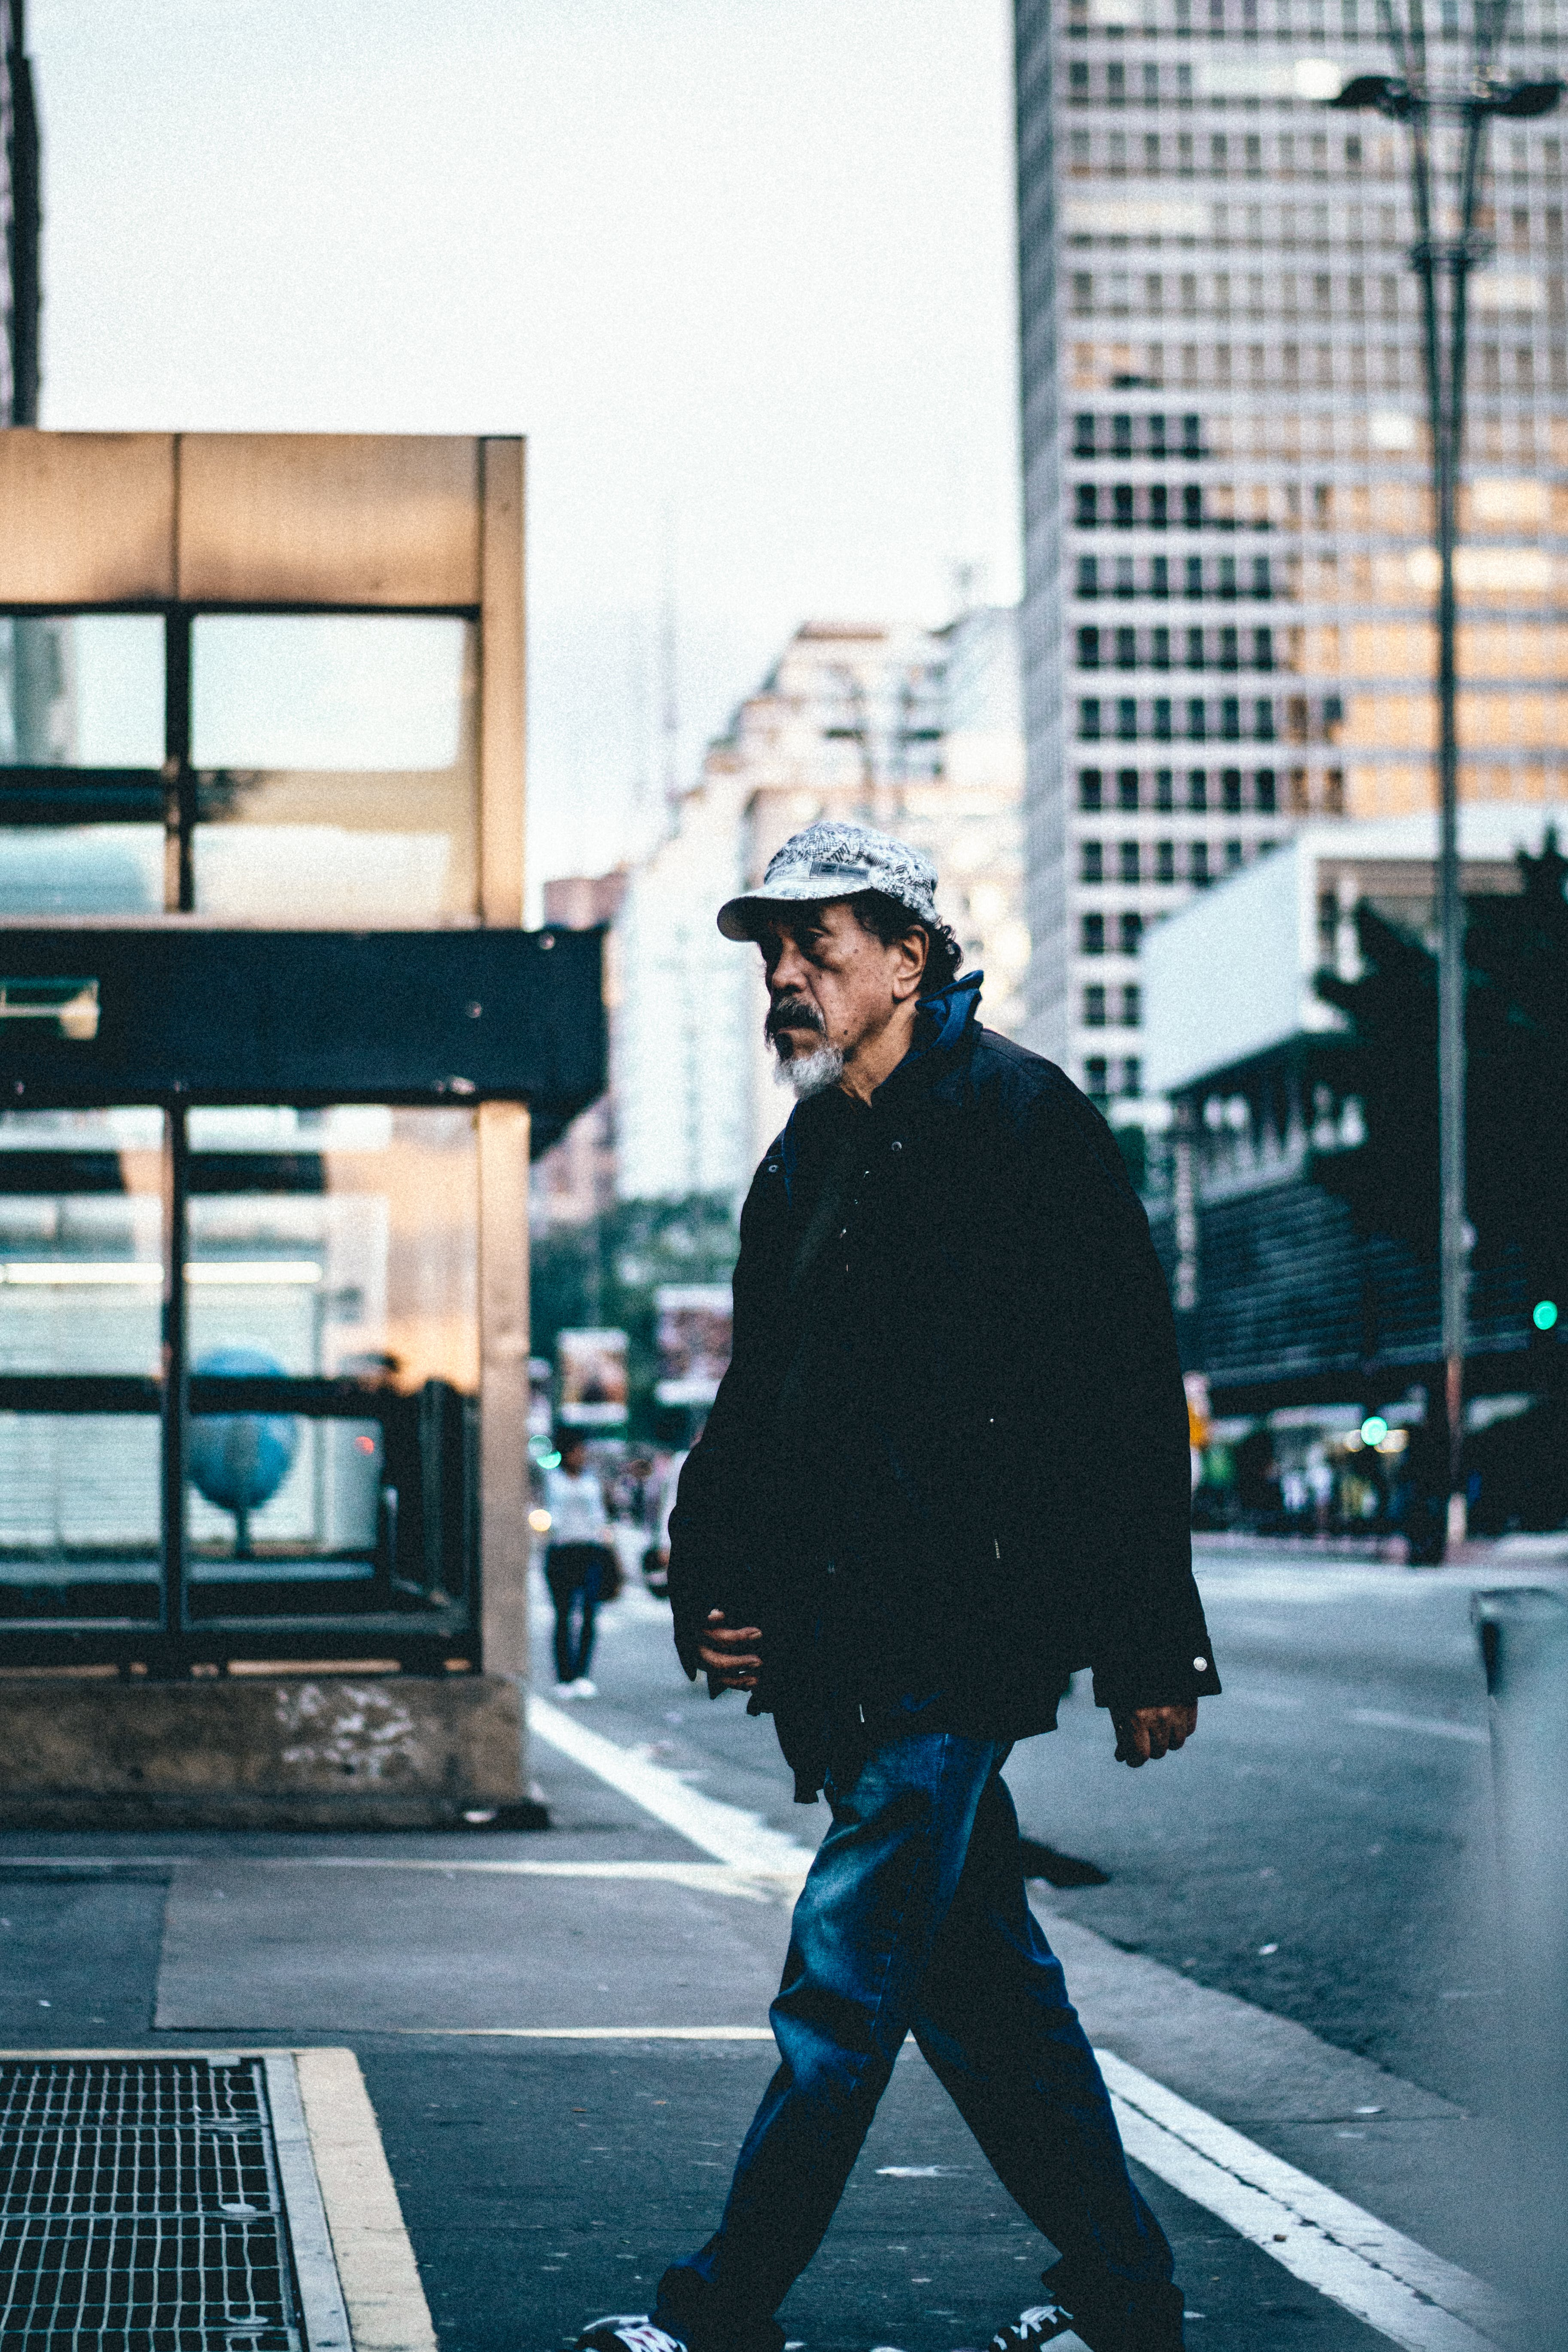 Free stock photo of city, road, man, person